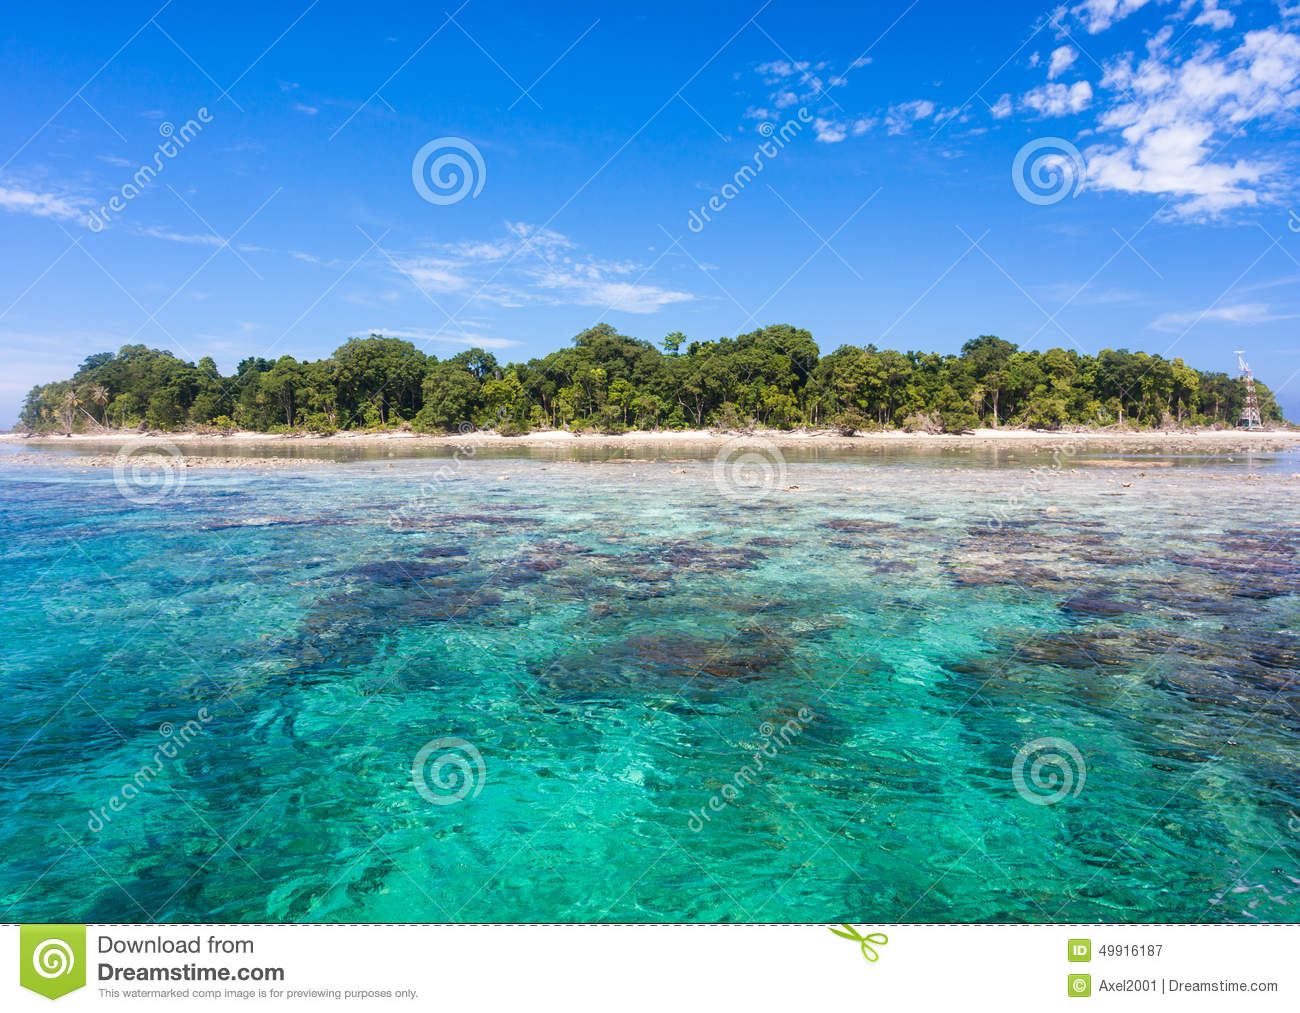 Download Turquoise Ocean Water And Idyllic Tropical Island Of Sipadan, Malaysia. Stock Image - Image of reef, paradise: 49916187